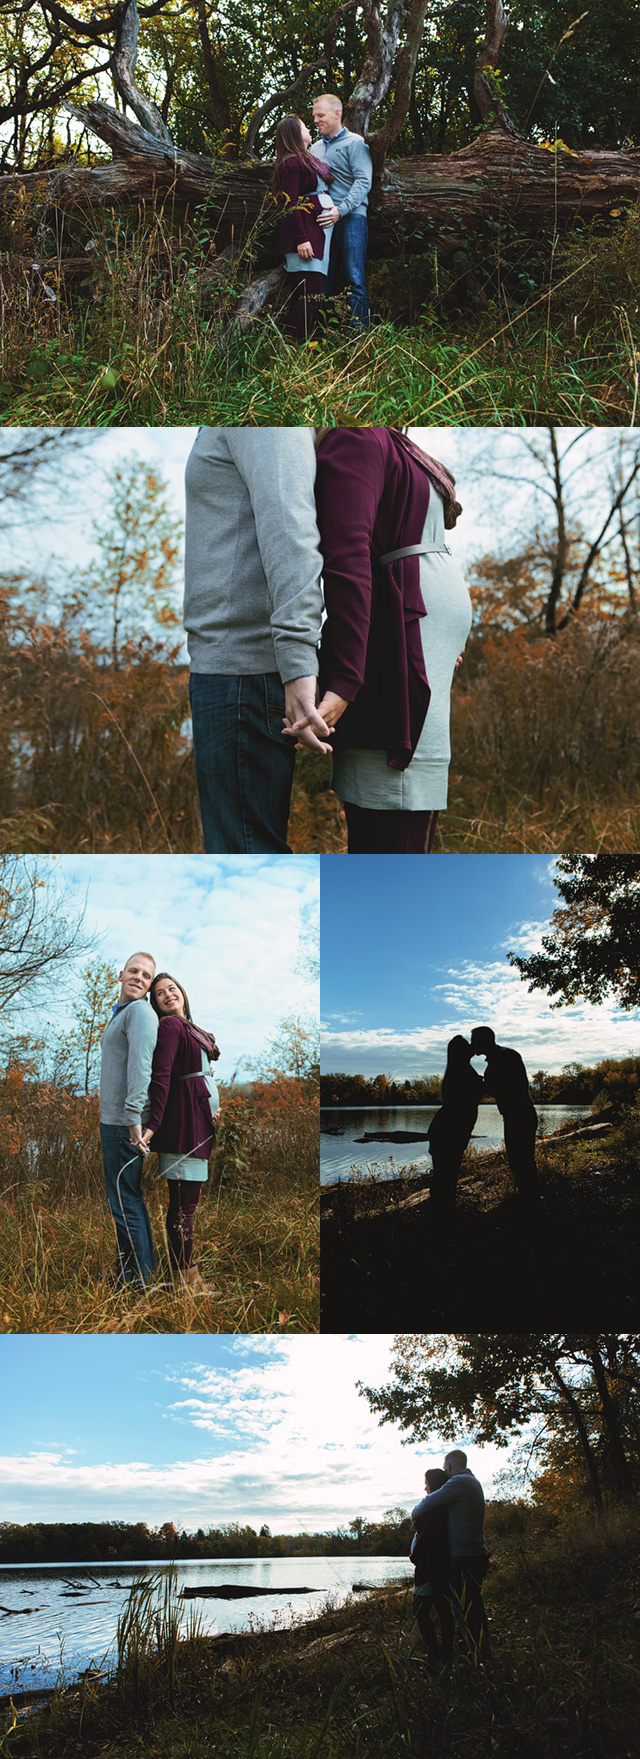 Dave-And-Erin-Maternity-Photos-2